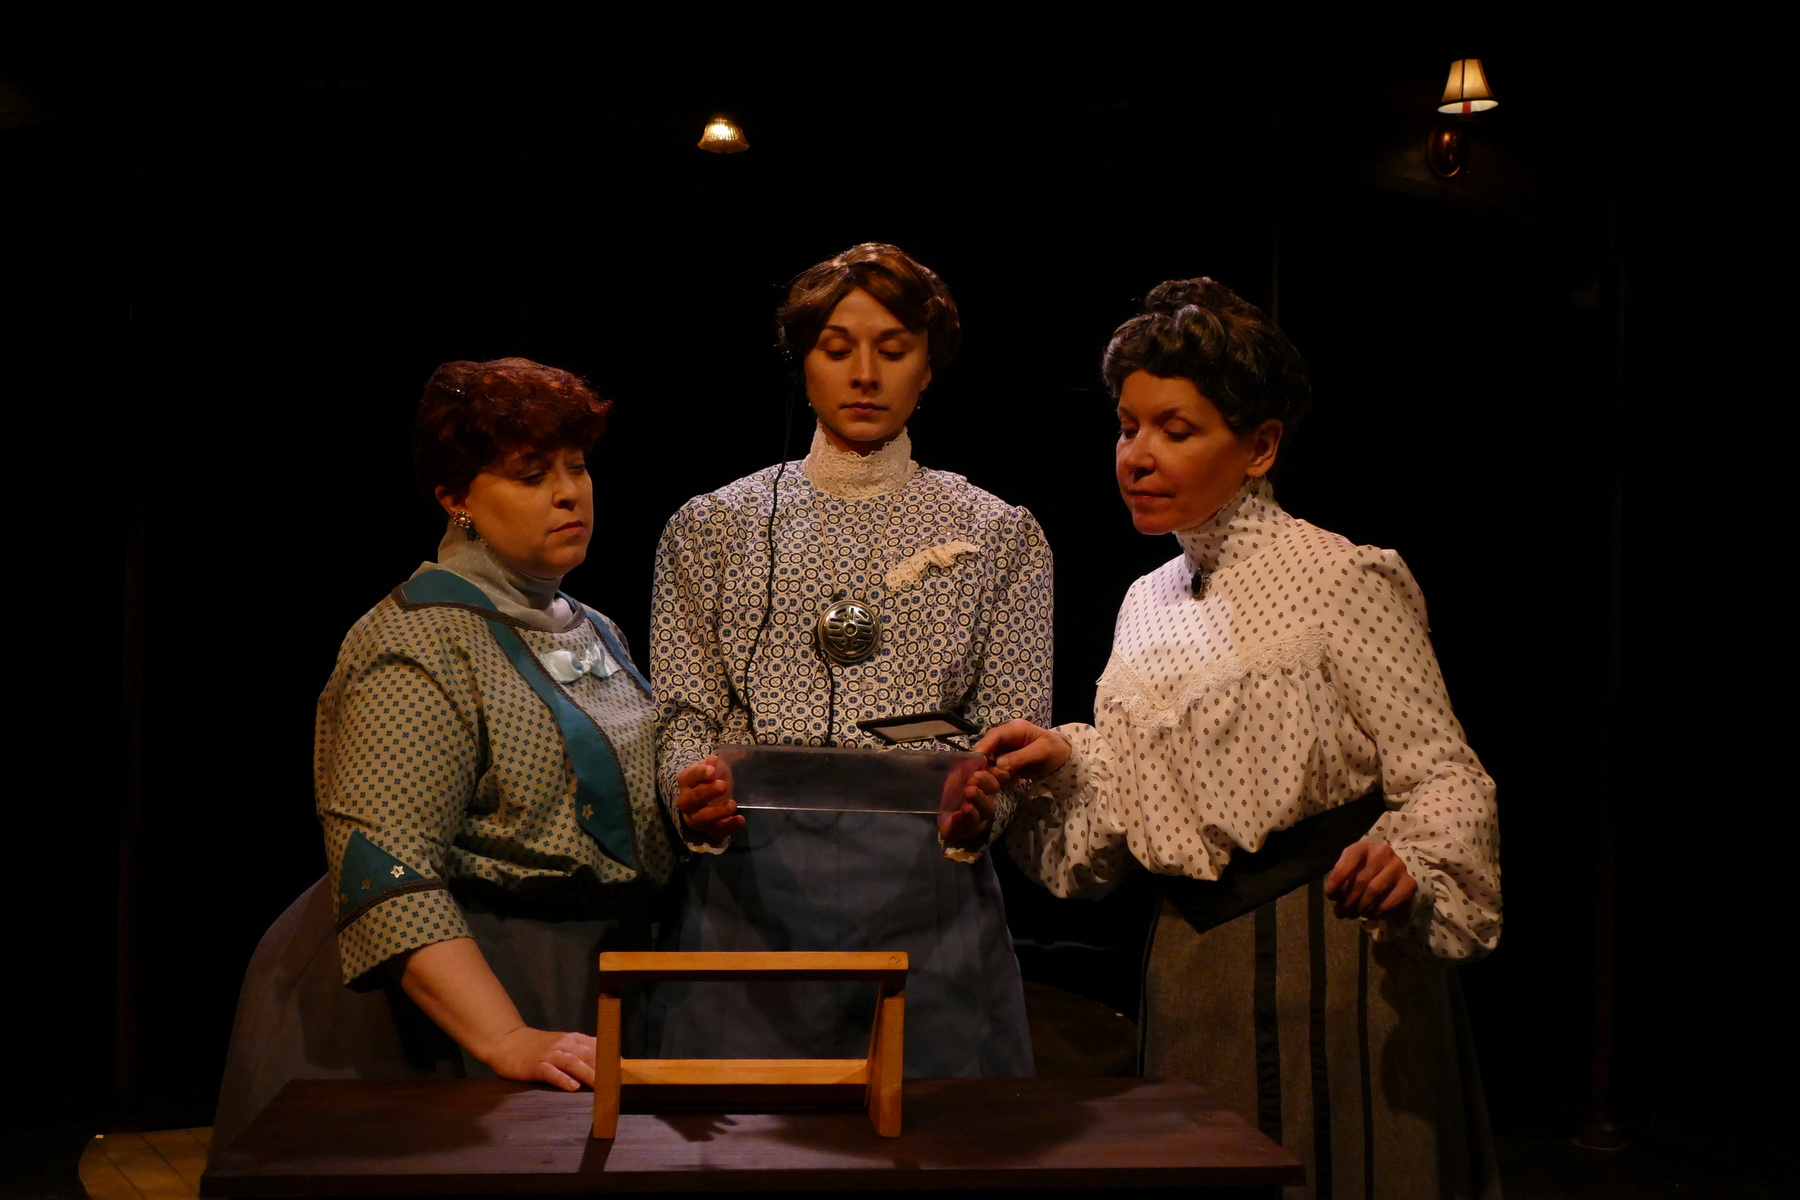 Molly Clay as Williamina Fleming, Brittany Gaul as Henrietta Leavitt, Pam Matthews as Annie Cannon